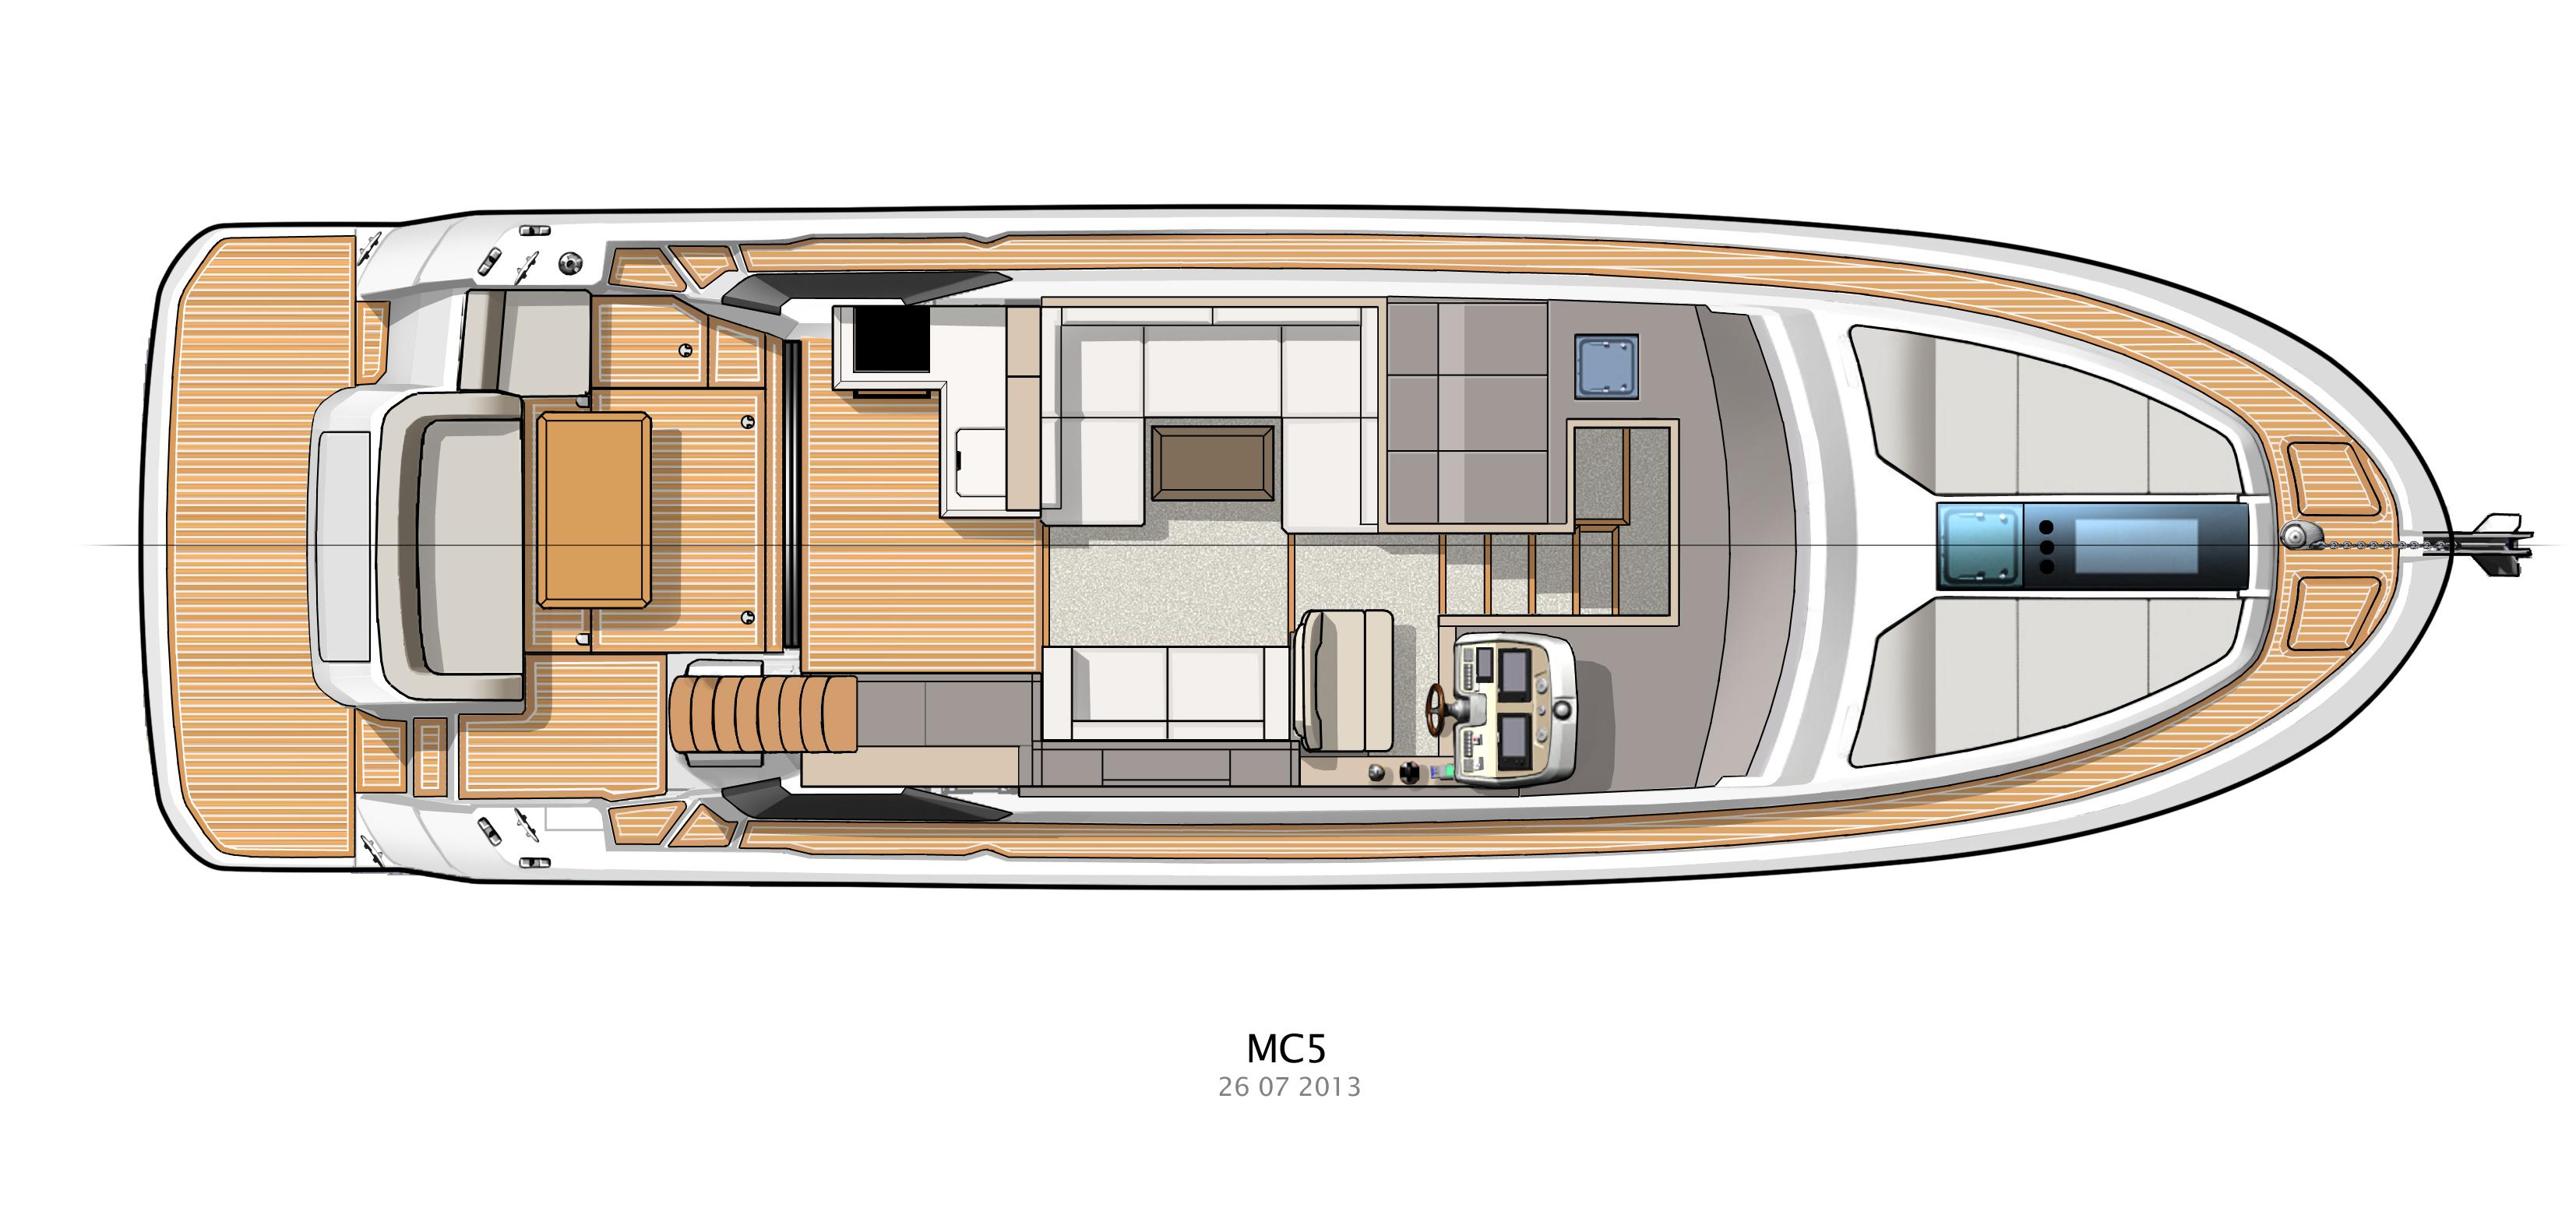 Cockpit/Galley and Salon Layout